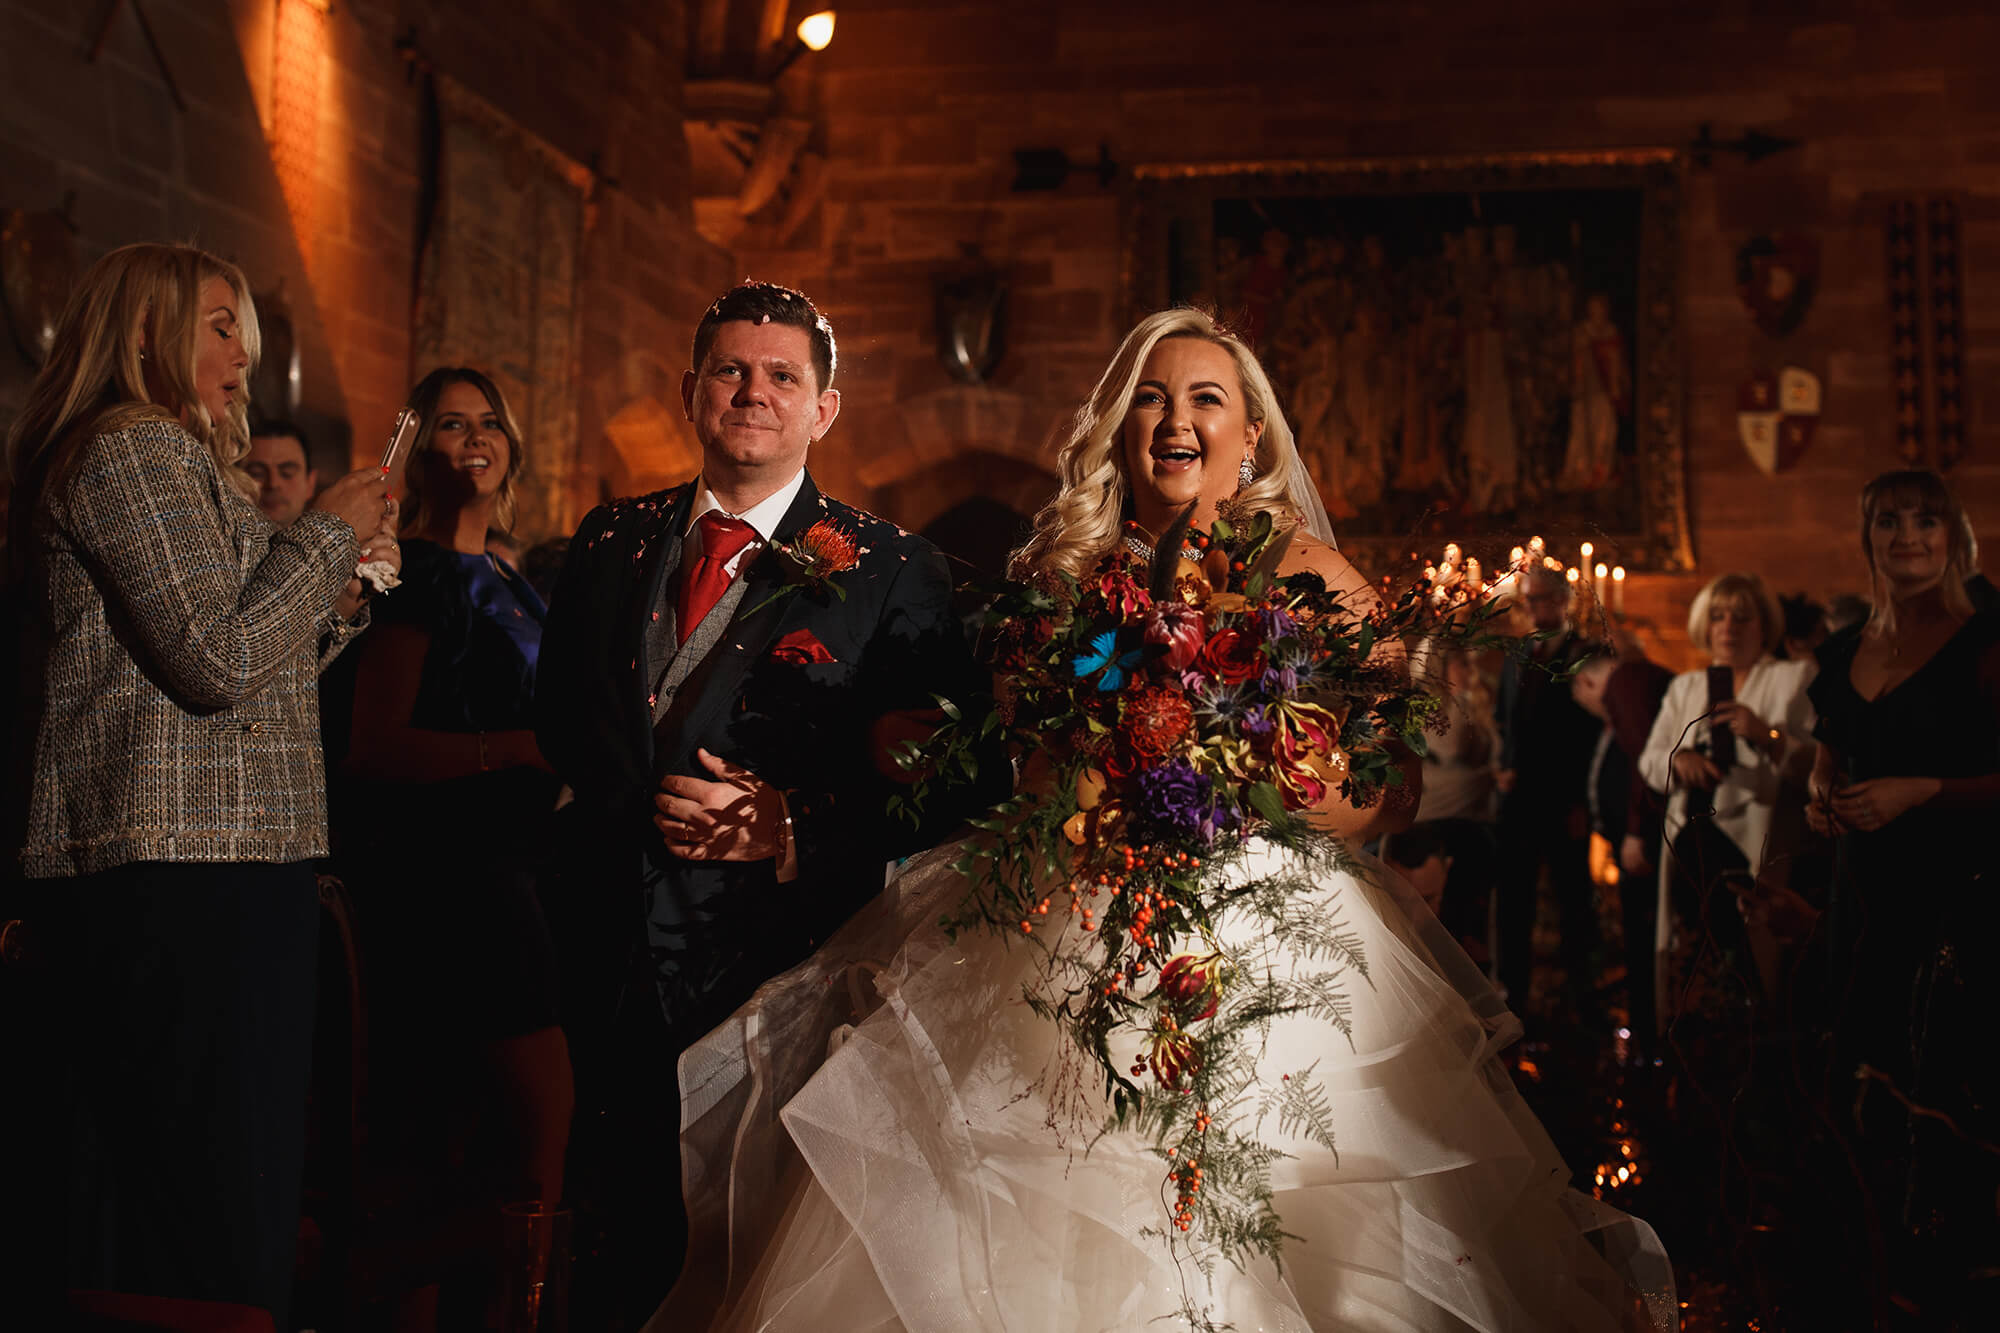 Wedding Ceremonies At Peckforton